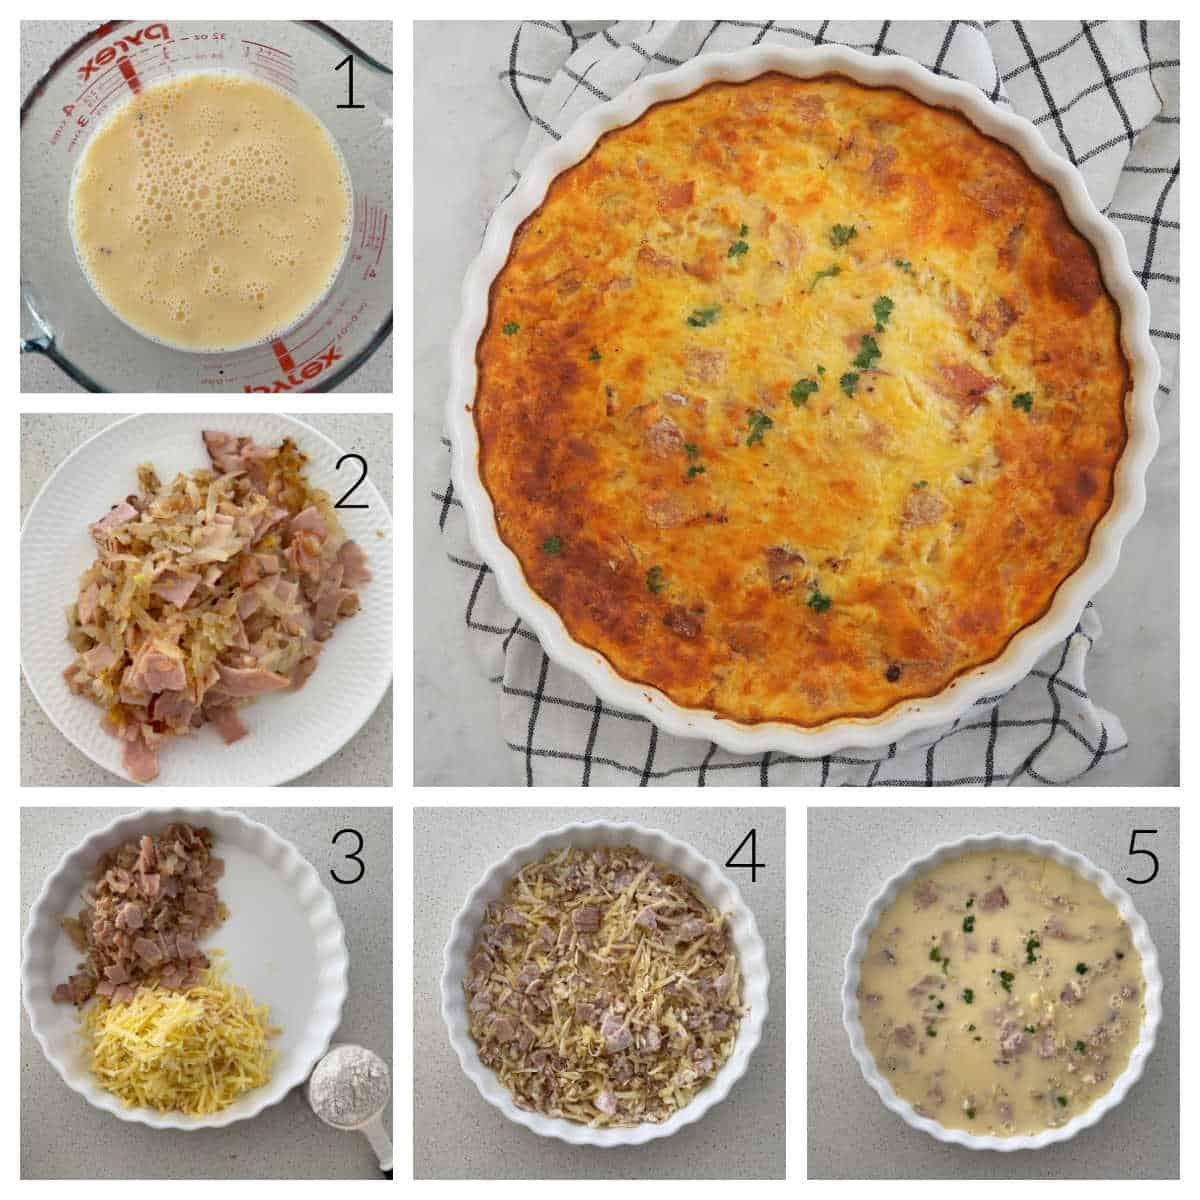 Collage showing the steps how to make an Egg and Bacon Impossible Pie